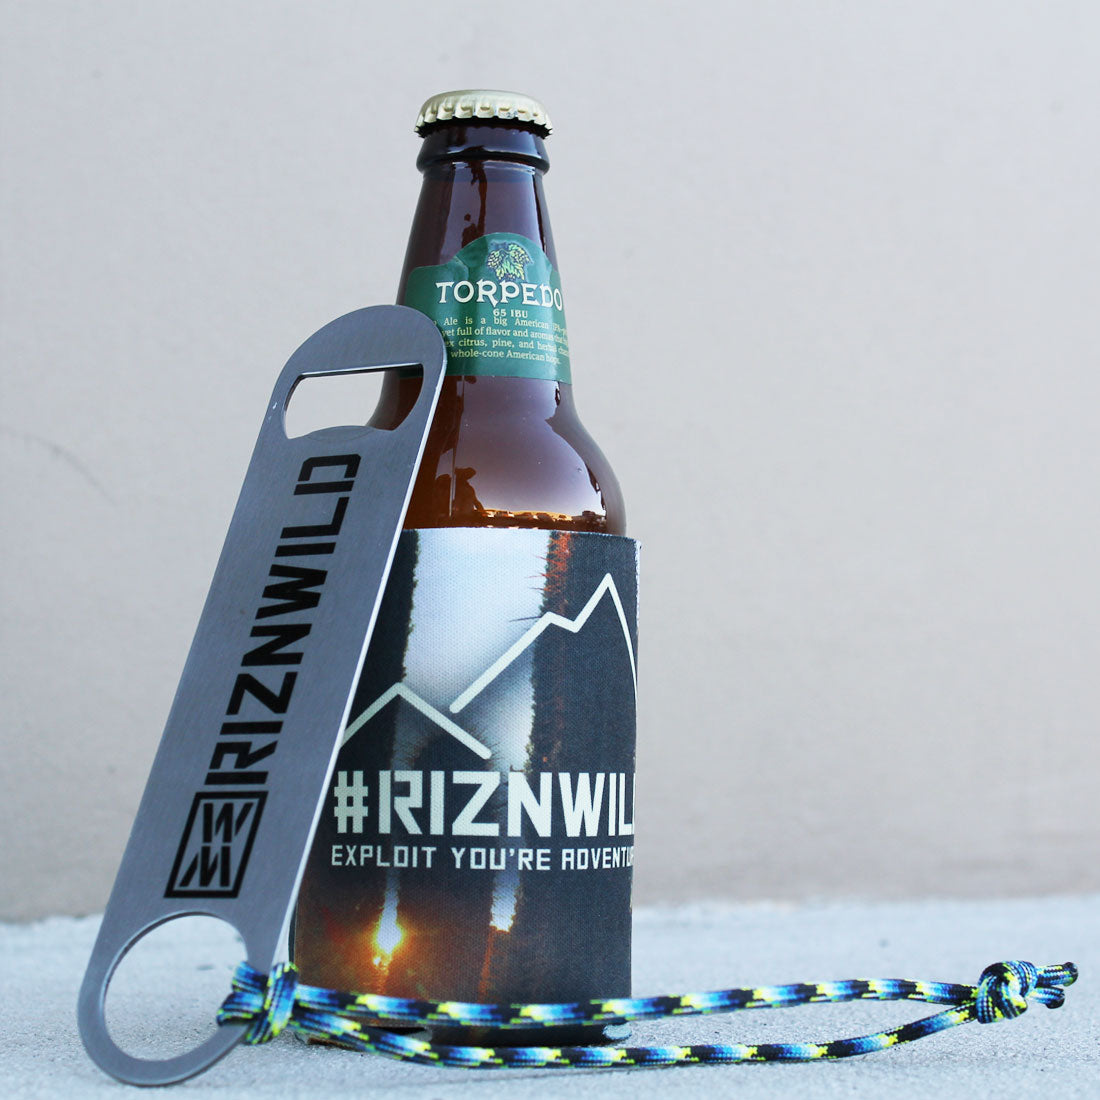 Standard 2-Sided Stainless Steel Bottle Opener